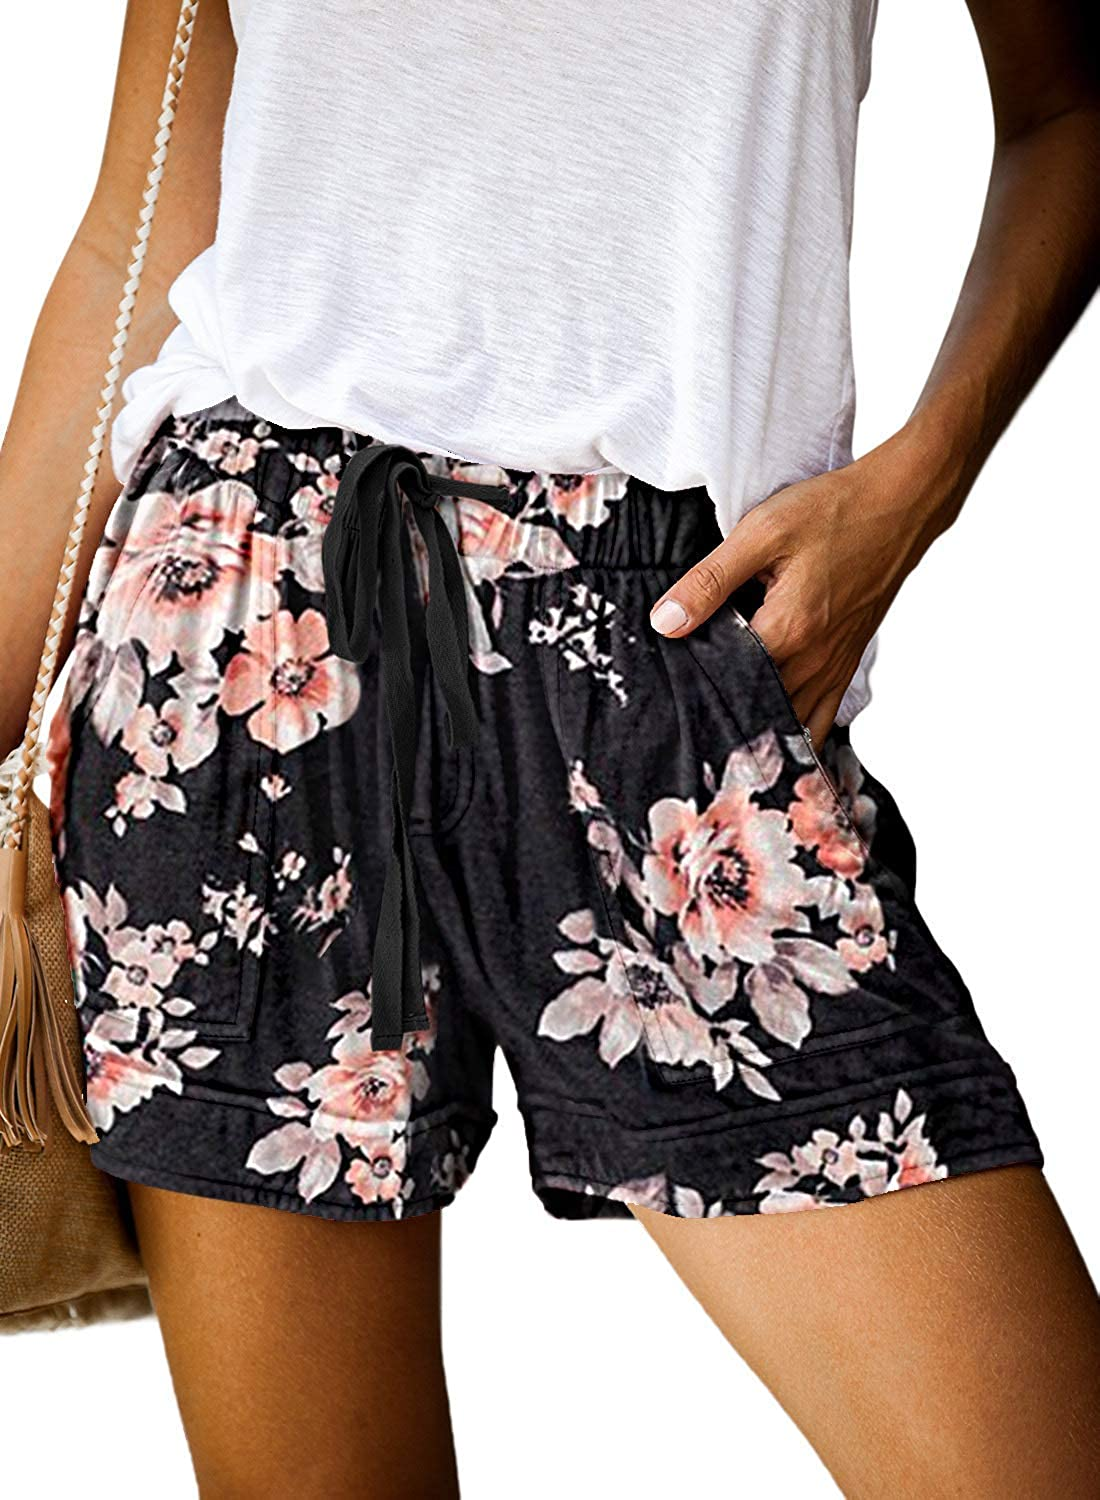 Outlet sale feature Uusollecy Women's Casual Shorts Waist Drawstring Columbus Mall Elastic